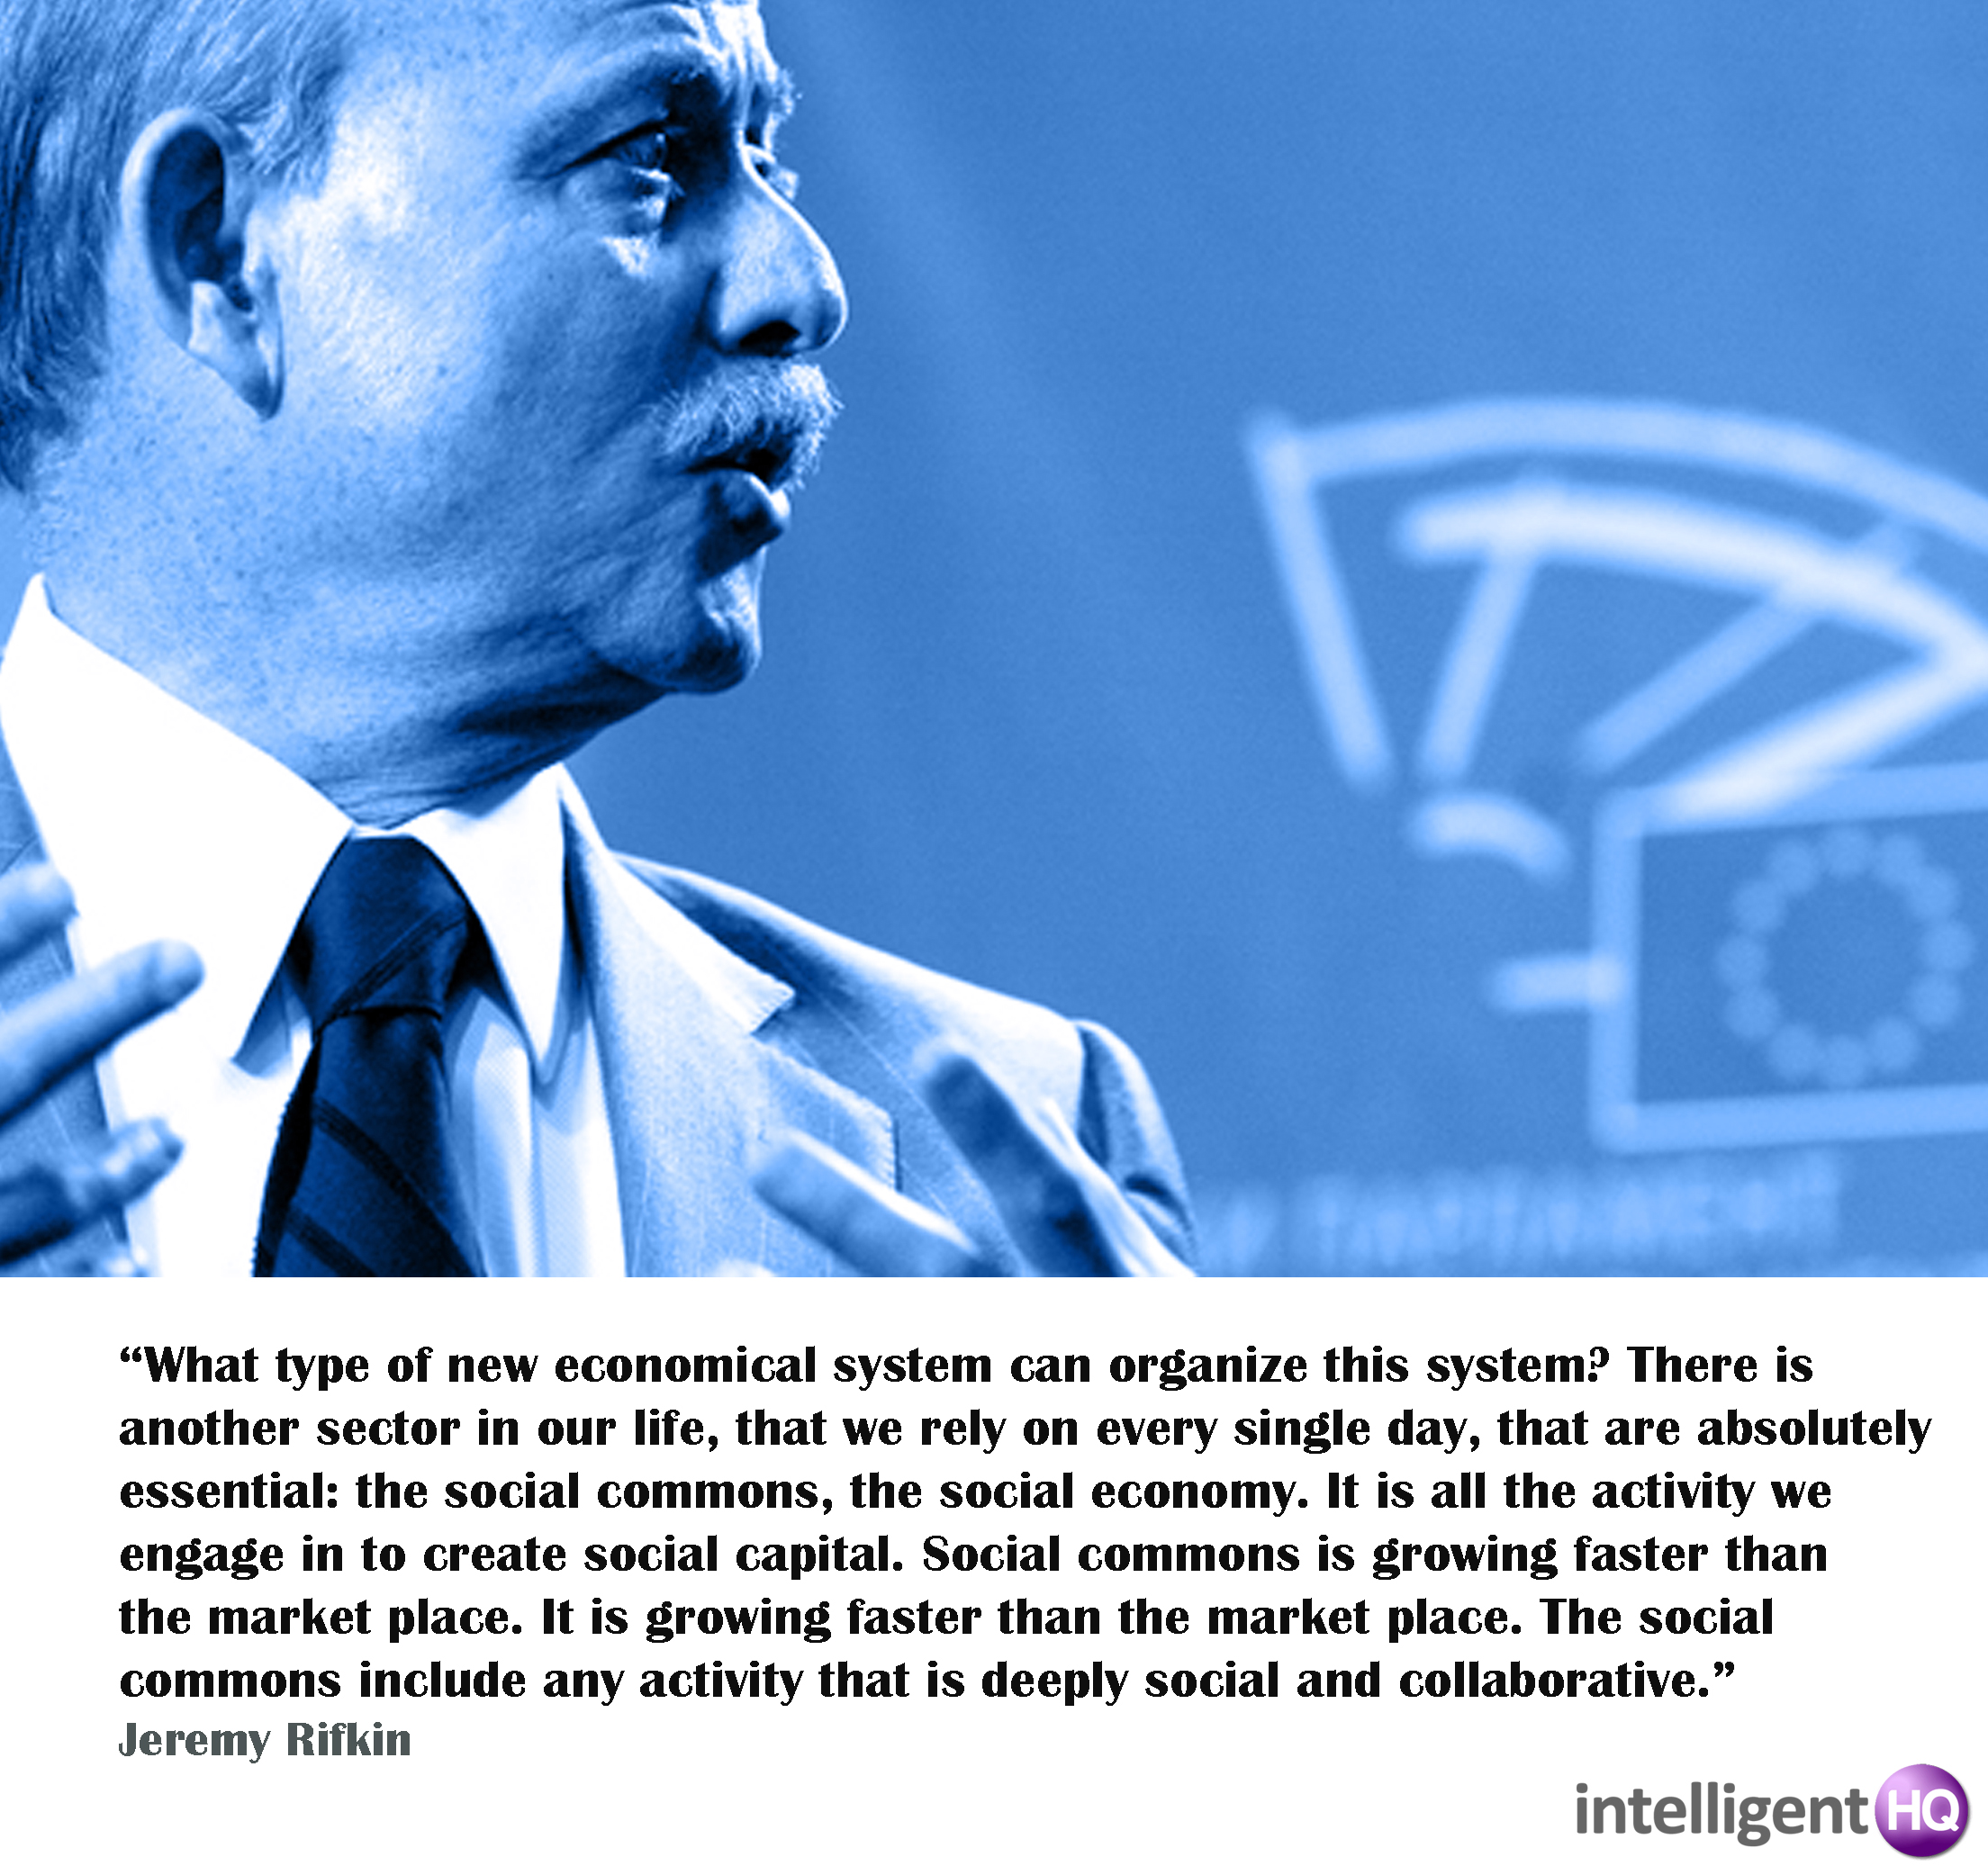 Quote by Jeremy Rifkin - Intelligenthq